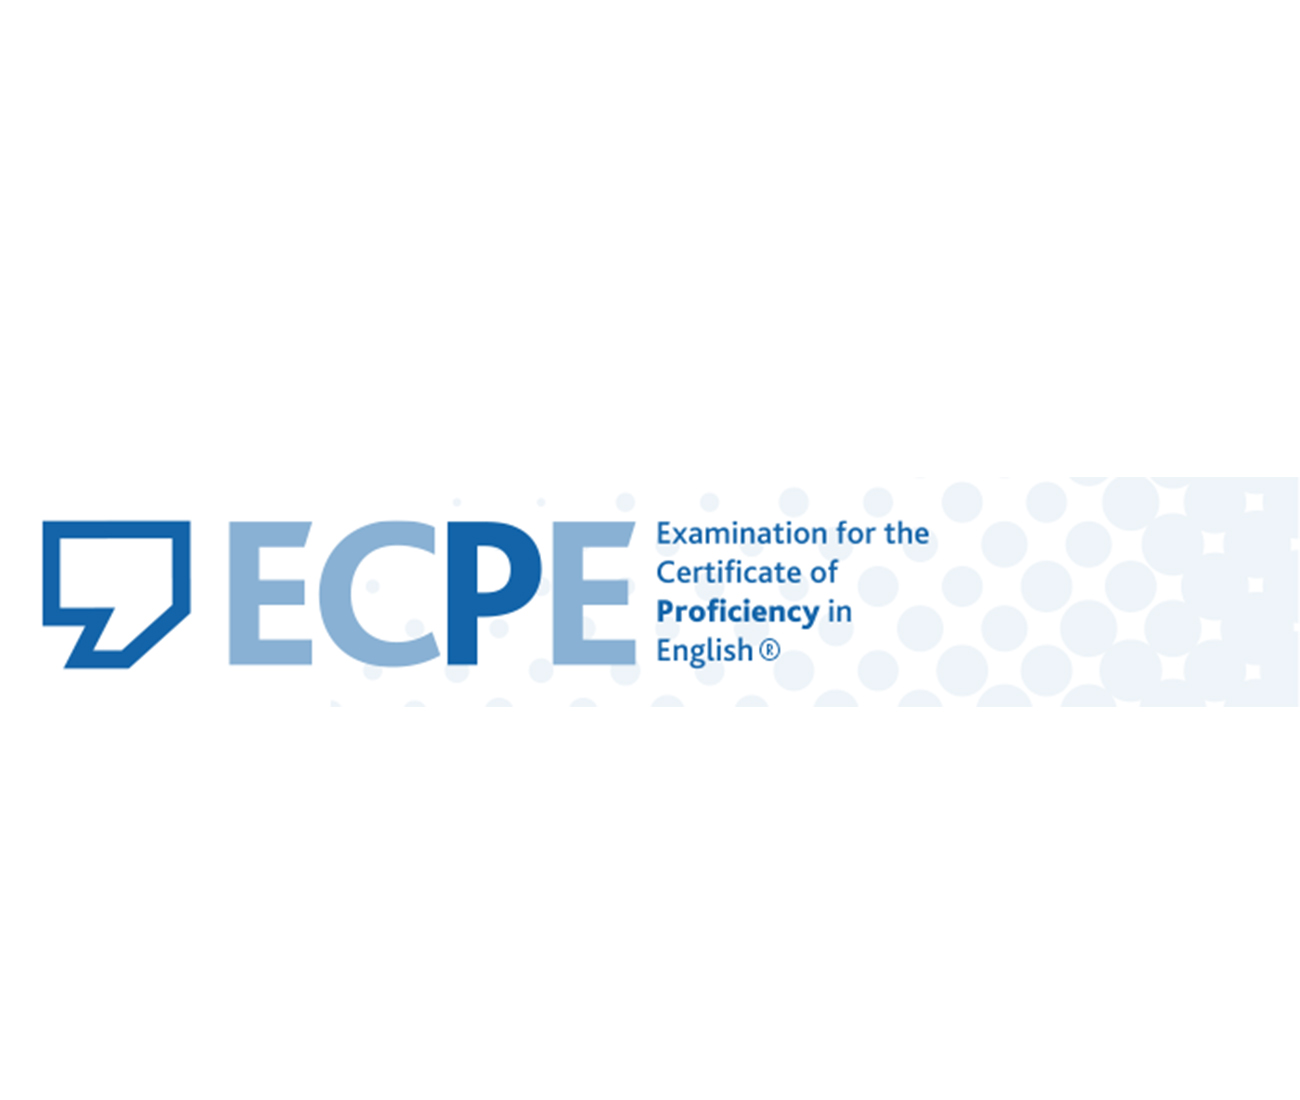 Examination for the Certificate of Proficiency in English (ECPE)